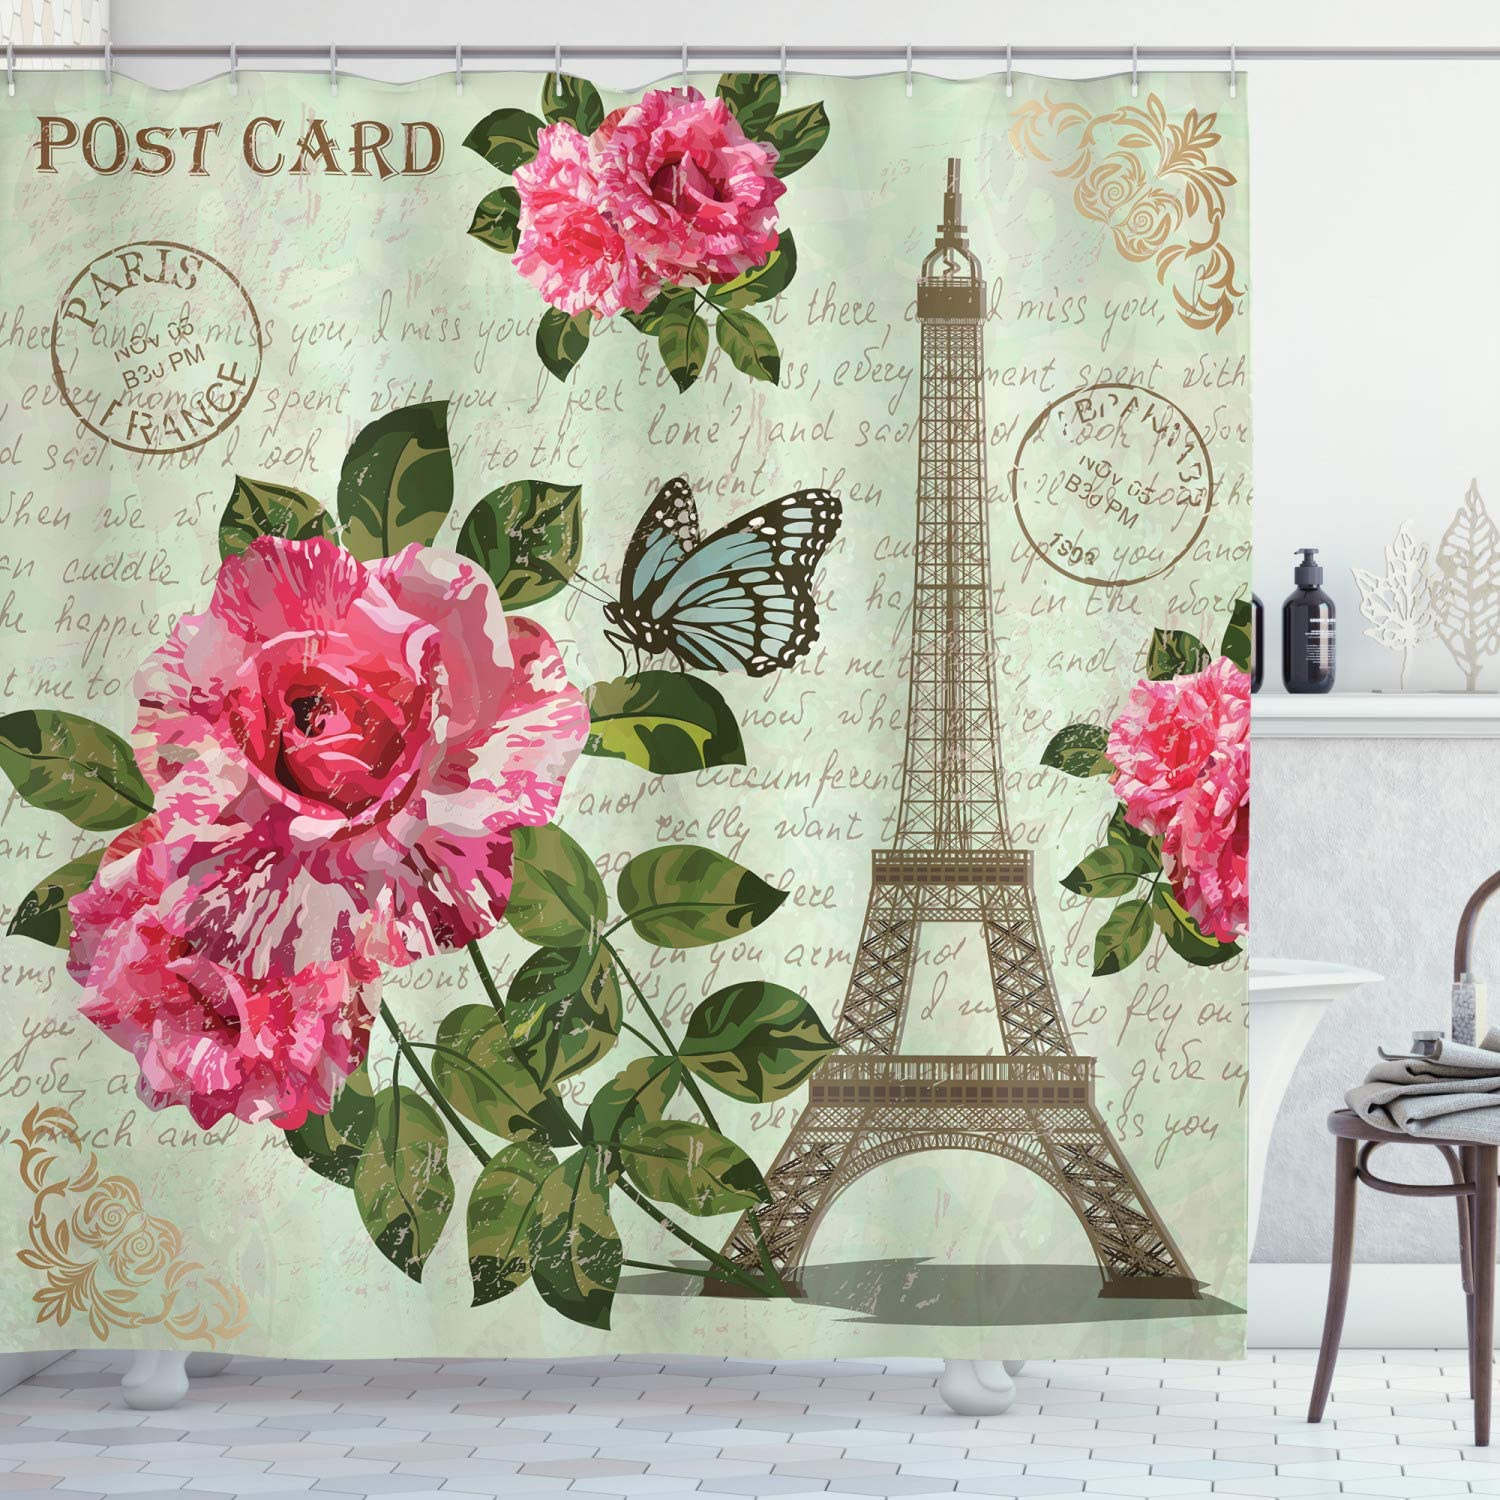 Ambesonne Paris Shower Curtain, Shabby Chic Romantic Roses Flowers Leaves with Eiffel Tower and Abstract Lettering, Fabric Bathroom Decor Set with Hooks, 75 Inches Long, Multicolor